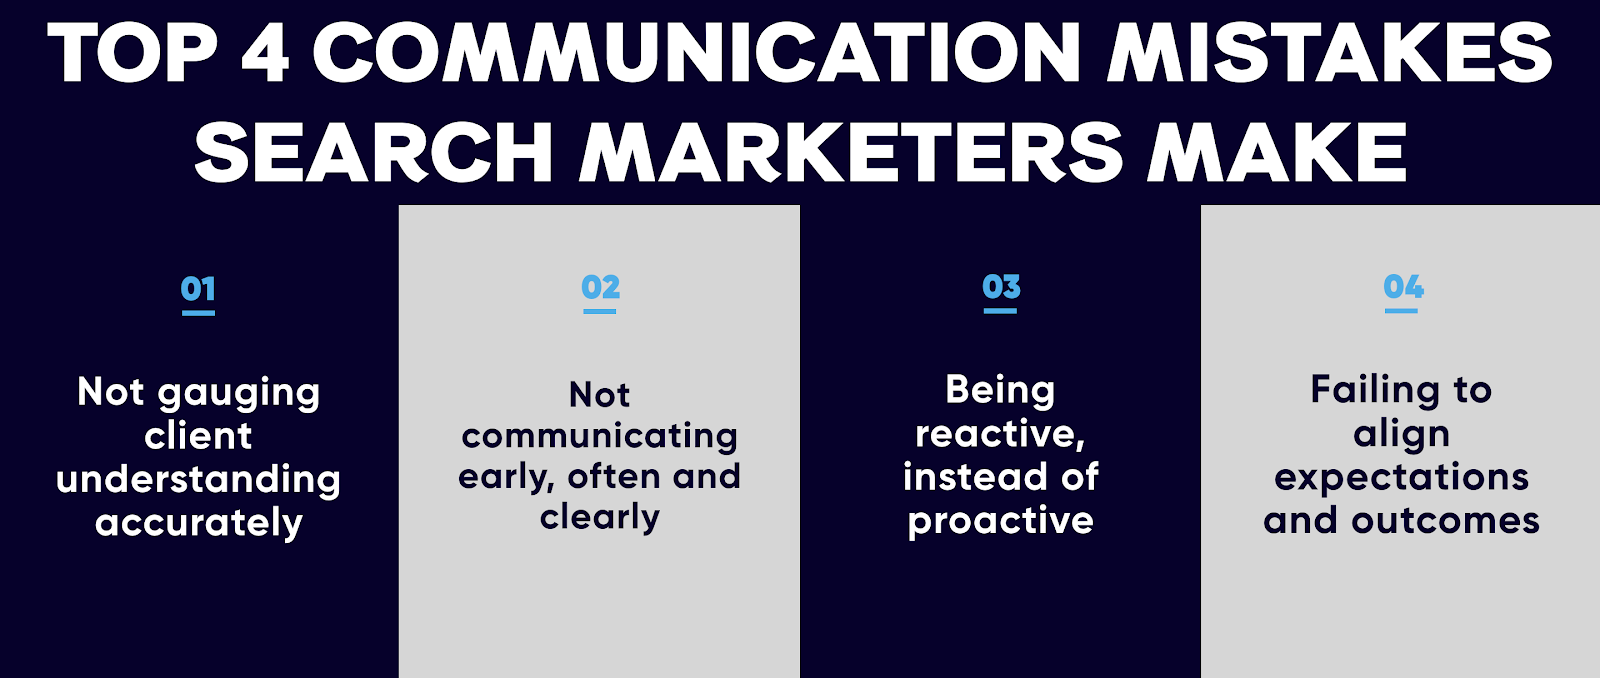 4 communication mistakes search marketers make